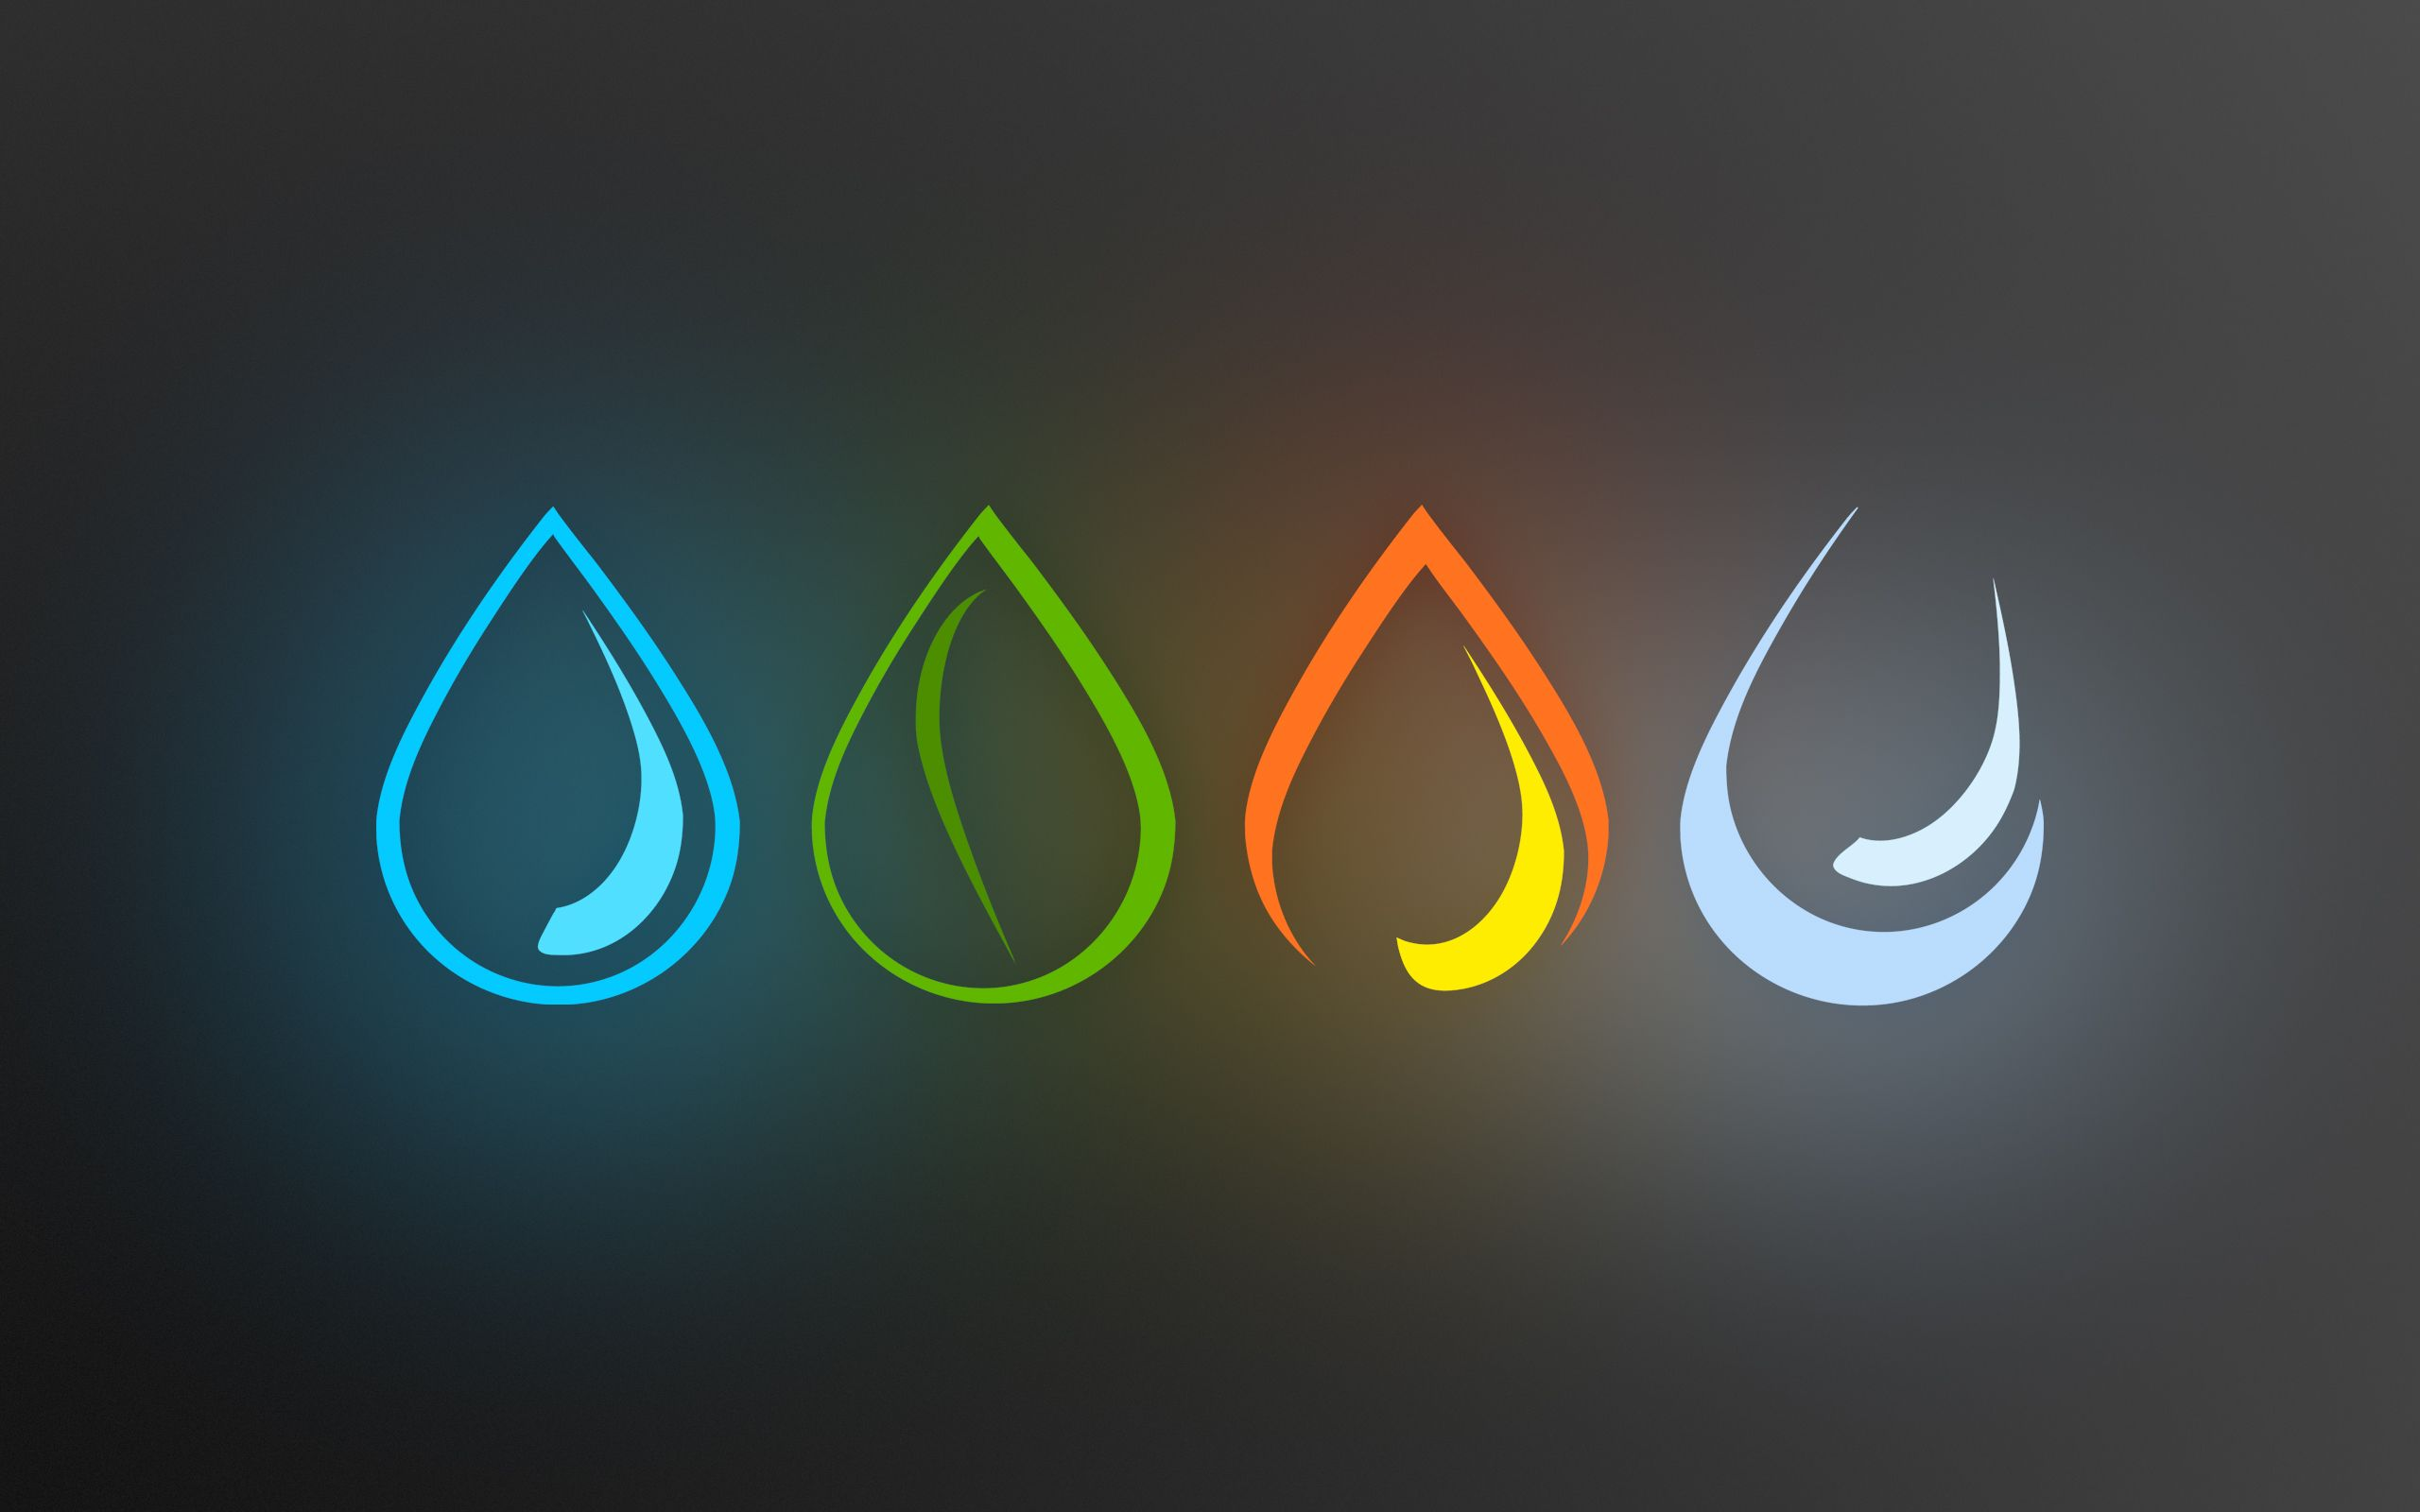 Water minimalistic fire earth elements air four elements symbols water minimalistic fire earth elements air four elements symbols 2560x1600 wallpaper buycottarizona